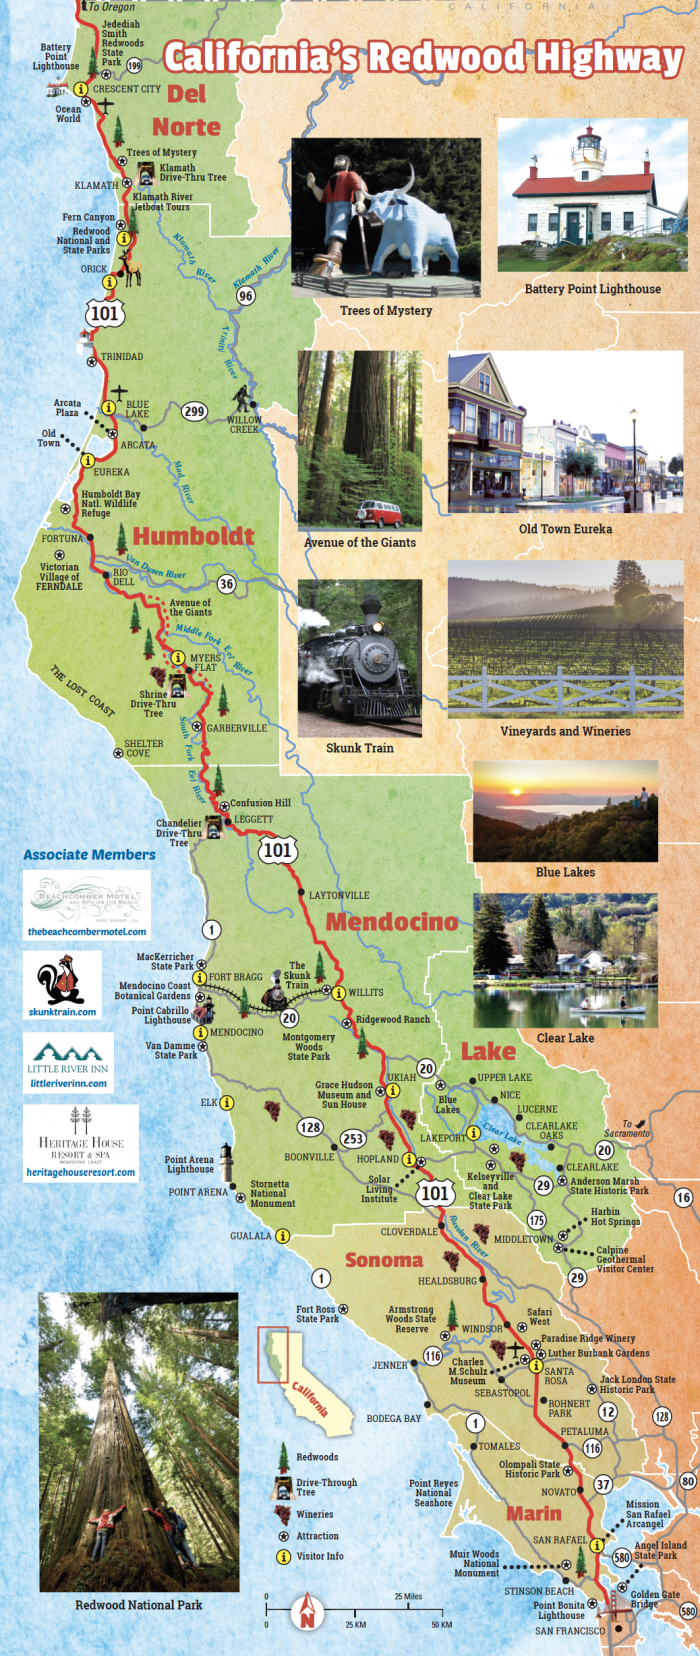 California Redwood Highway Map